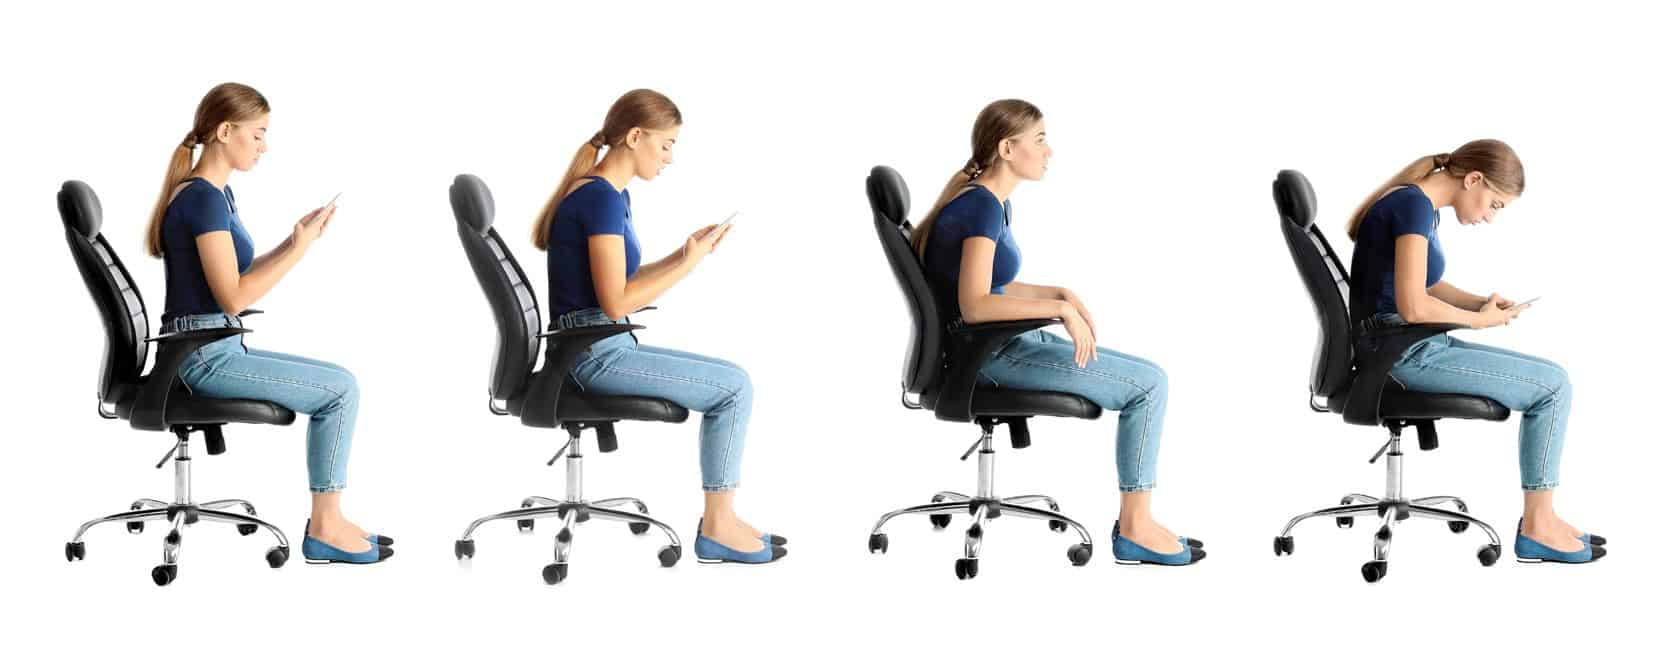 Diagram-of-how-poor-seating-posture-can-cause-neck-and-shoulder-pain-that-a-Physio-needs-to-treat-a-female